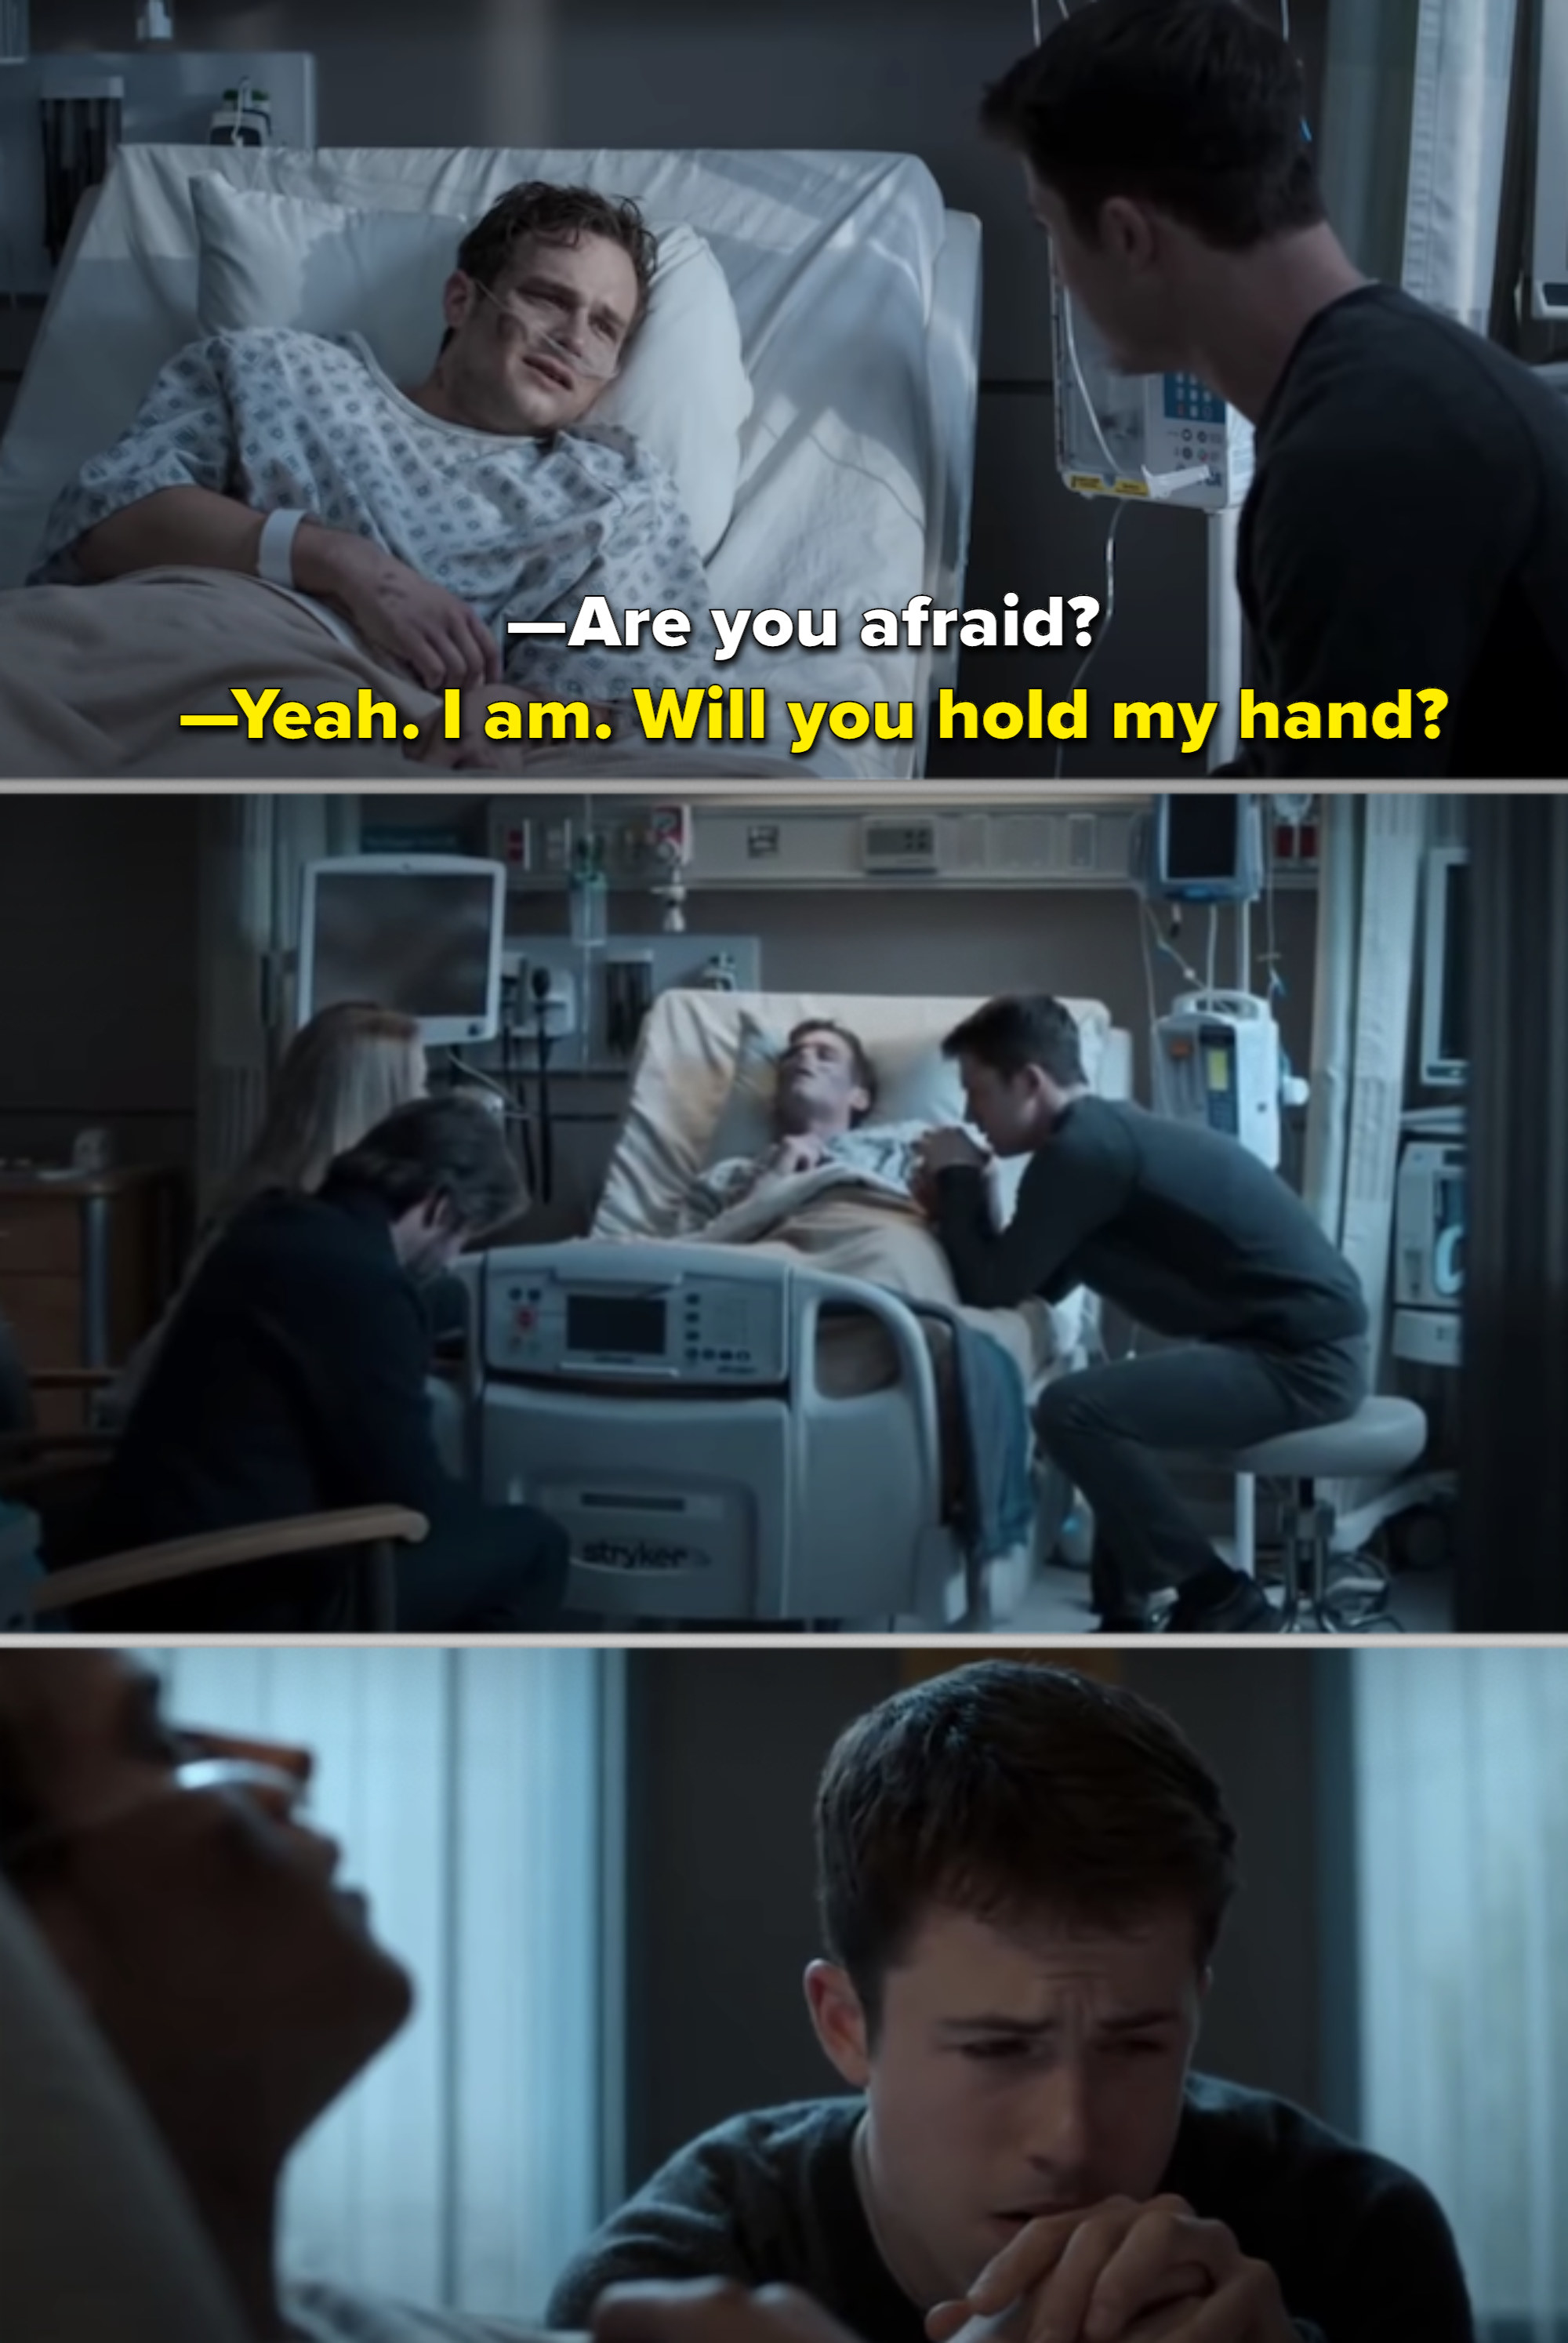 Clay holding Justin's lifeless hand in the hospital